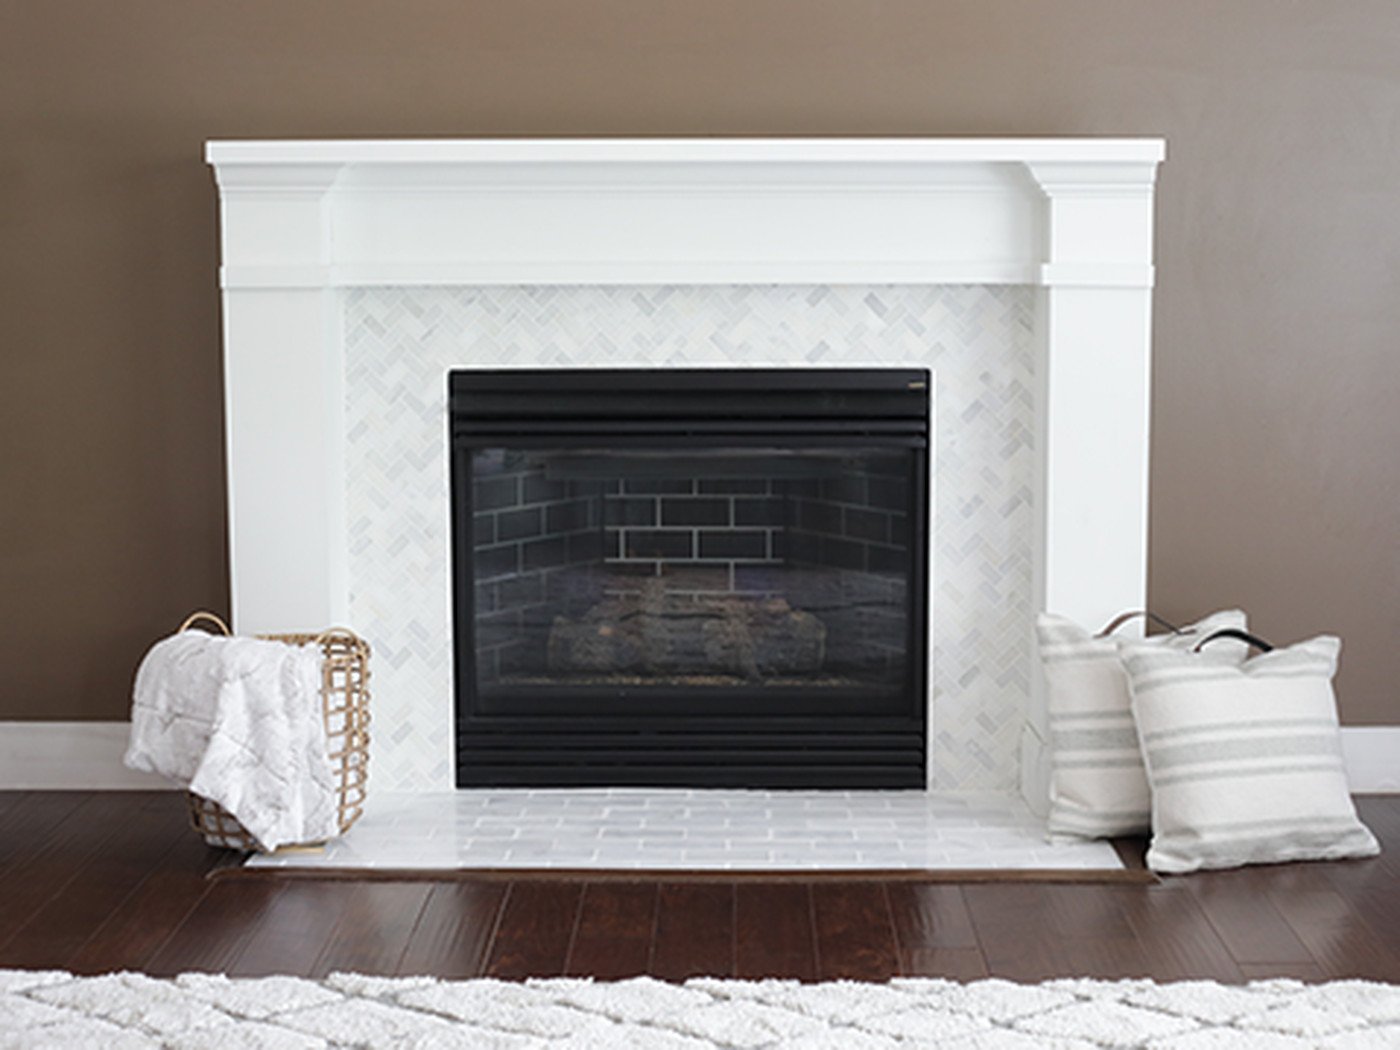 How To Tile A Fireplace This Old House